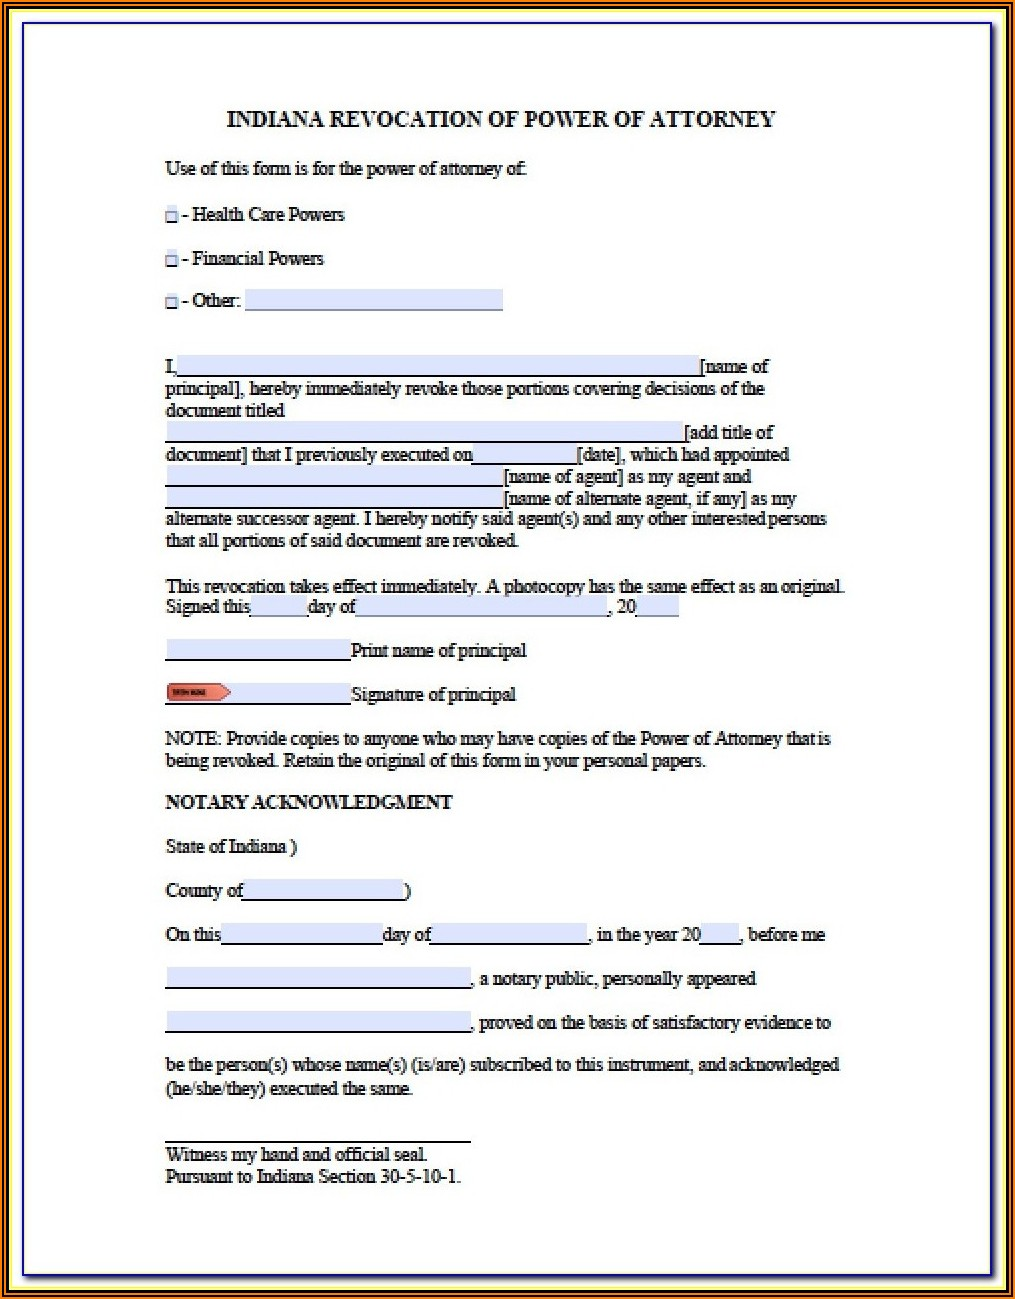 Free Printable Power Of Attorney Forms For Indiana